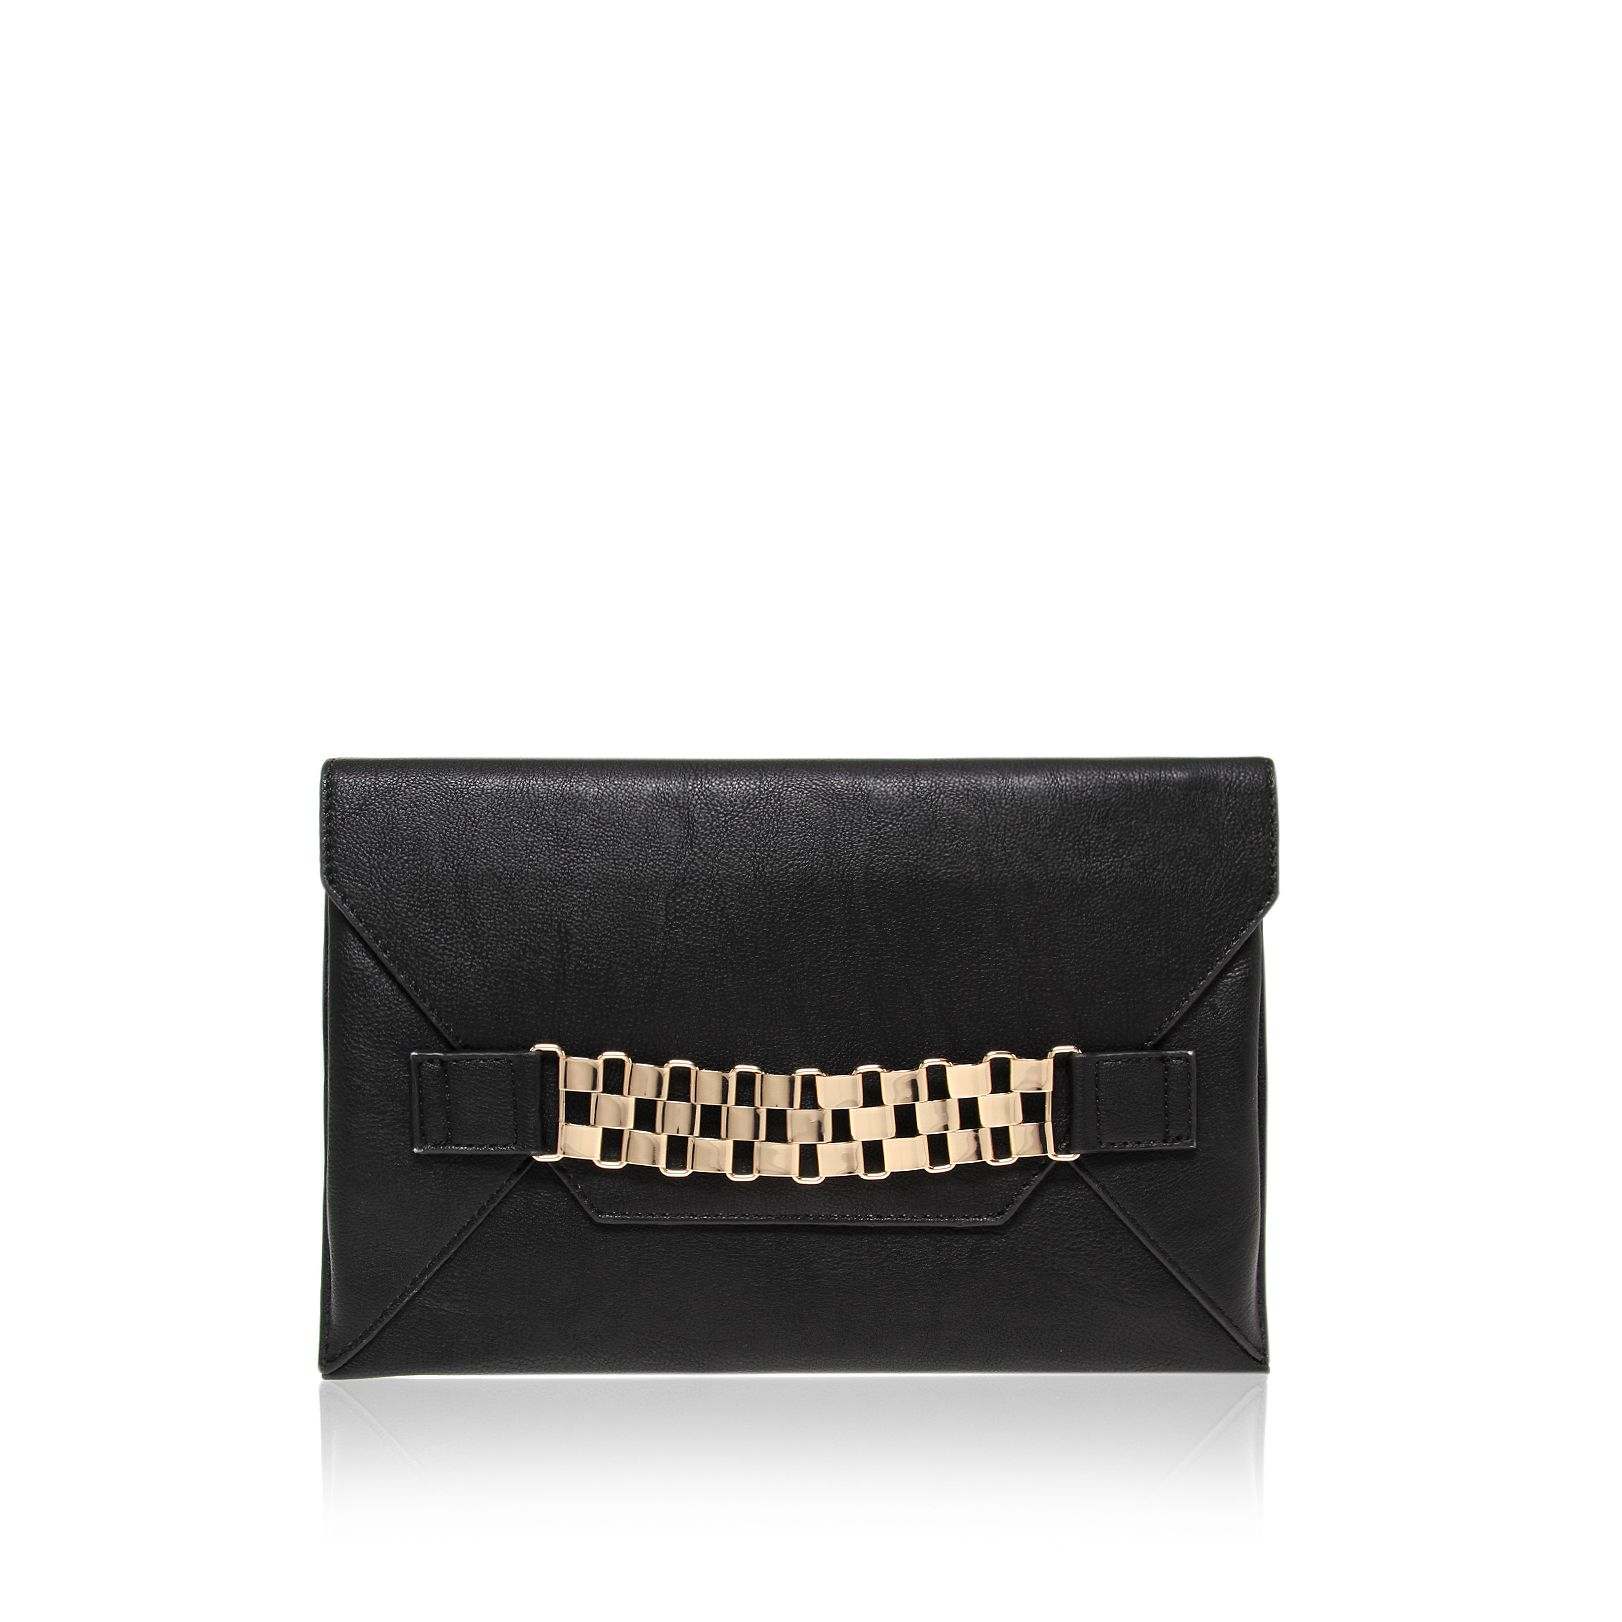 Tate Black Handbag